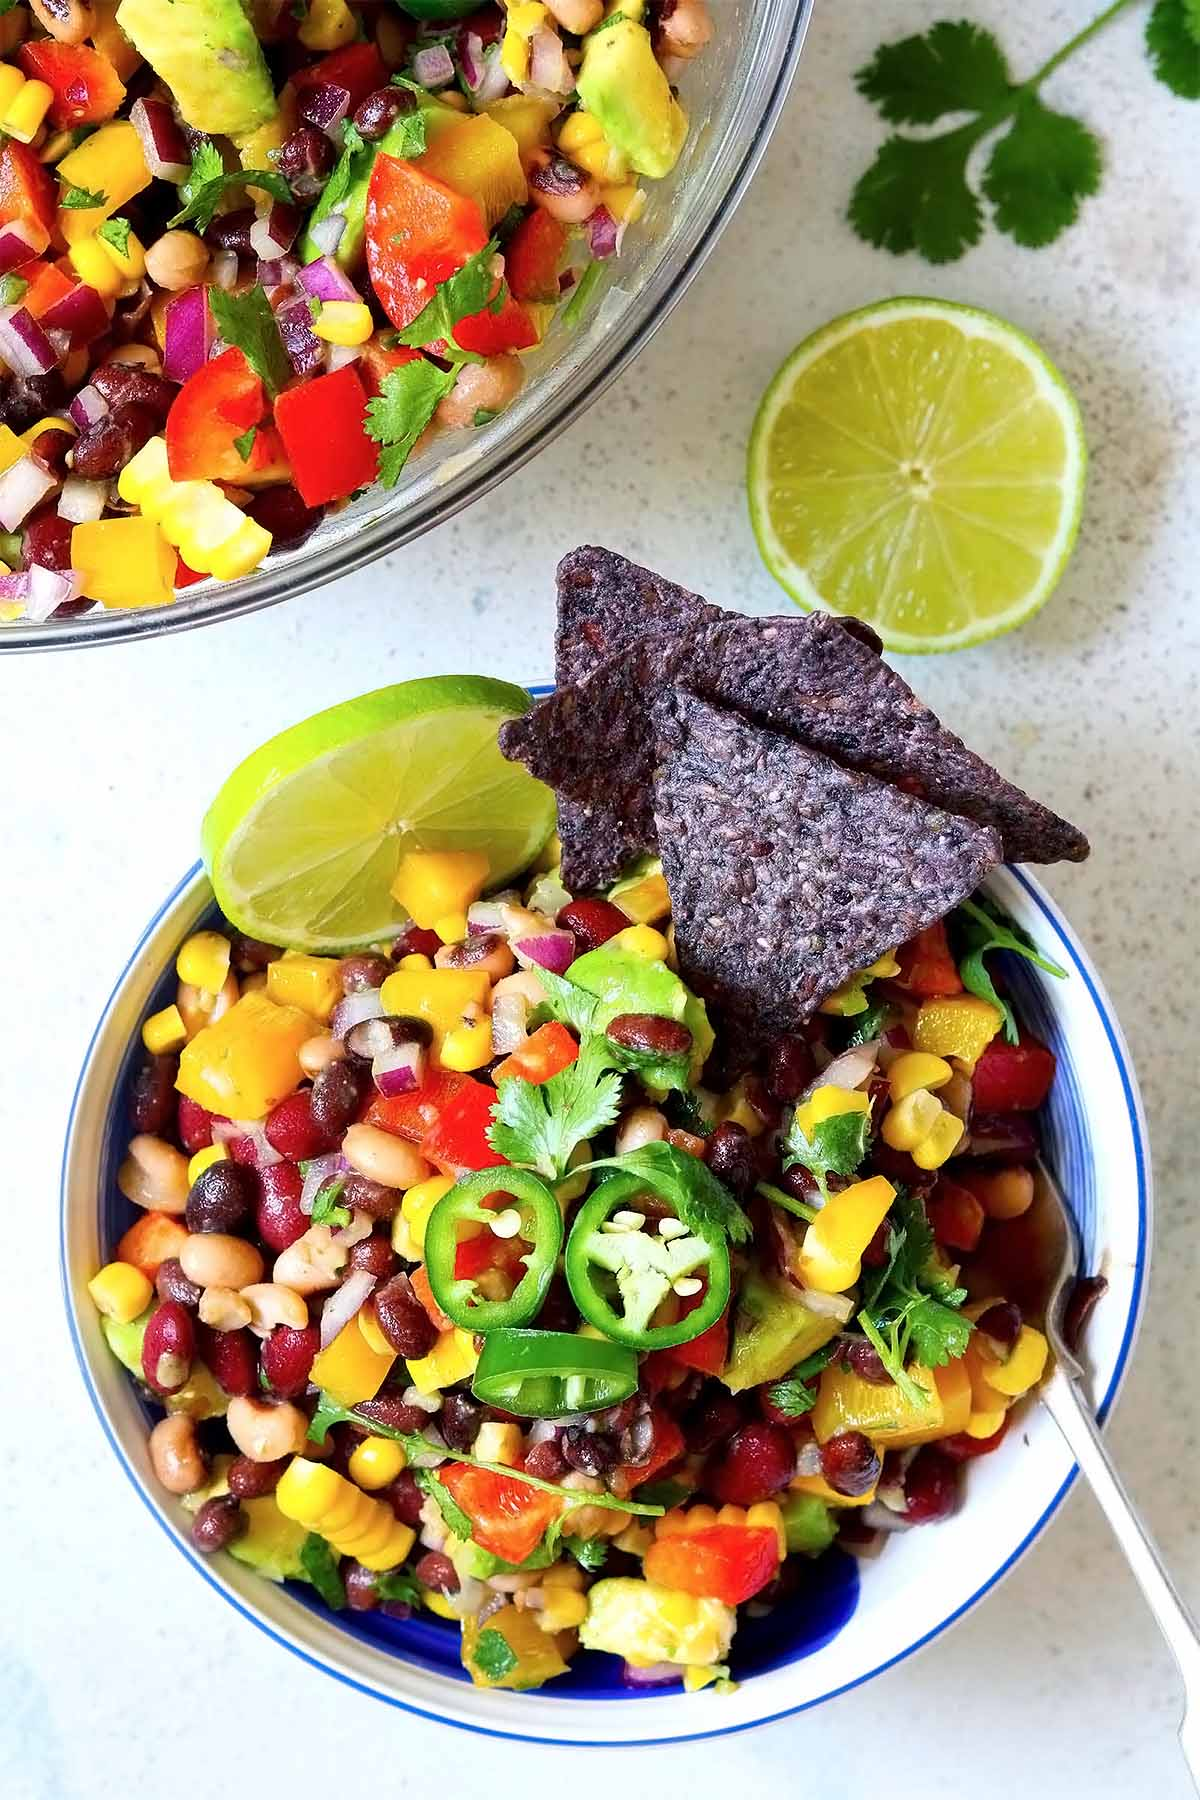 A salad made with beans, onion, peppers, avocado, slices of jalapeño, lime wedges and corn tortillas